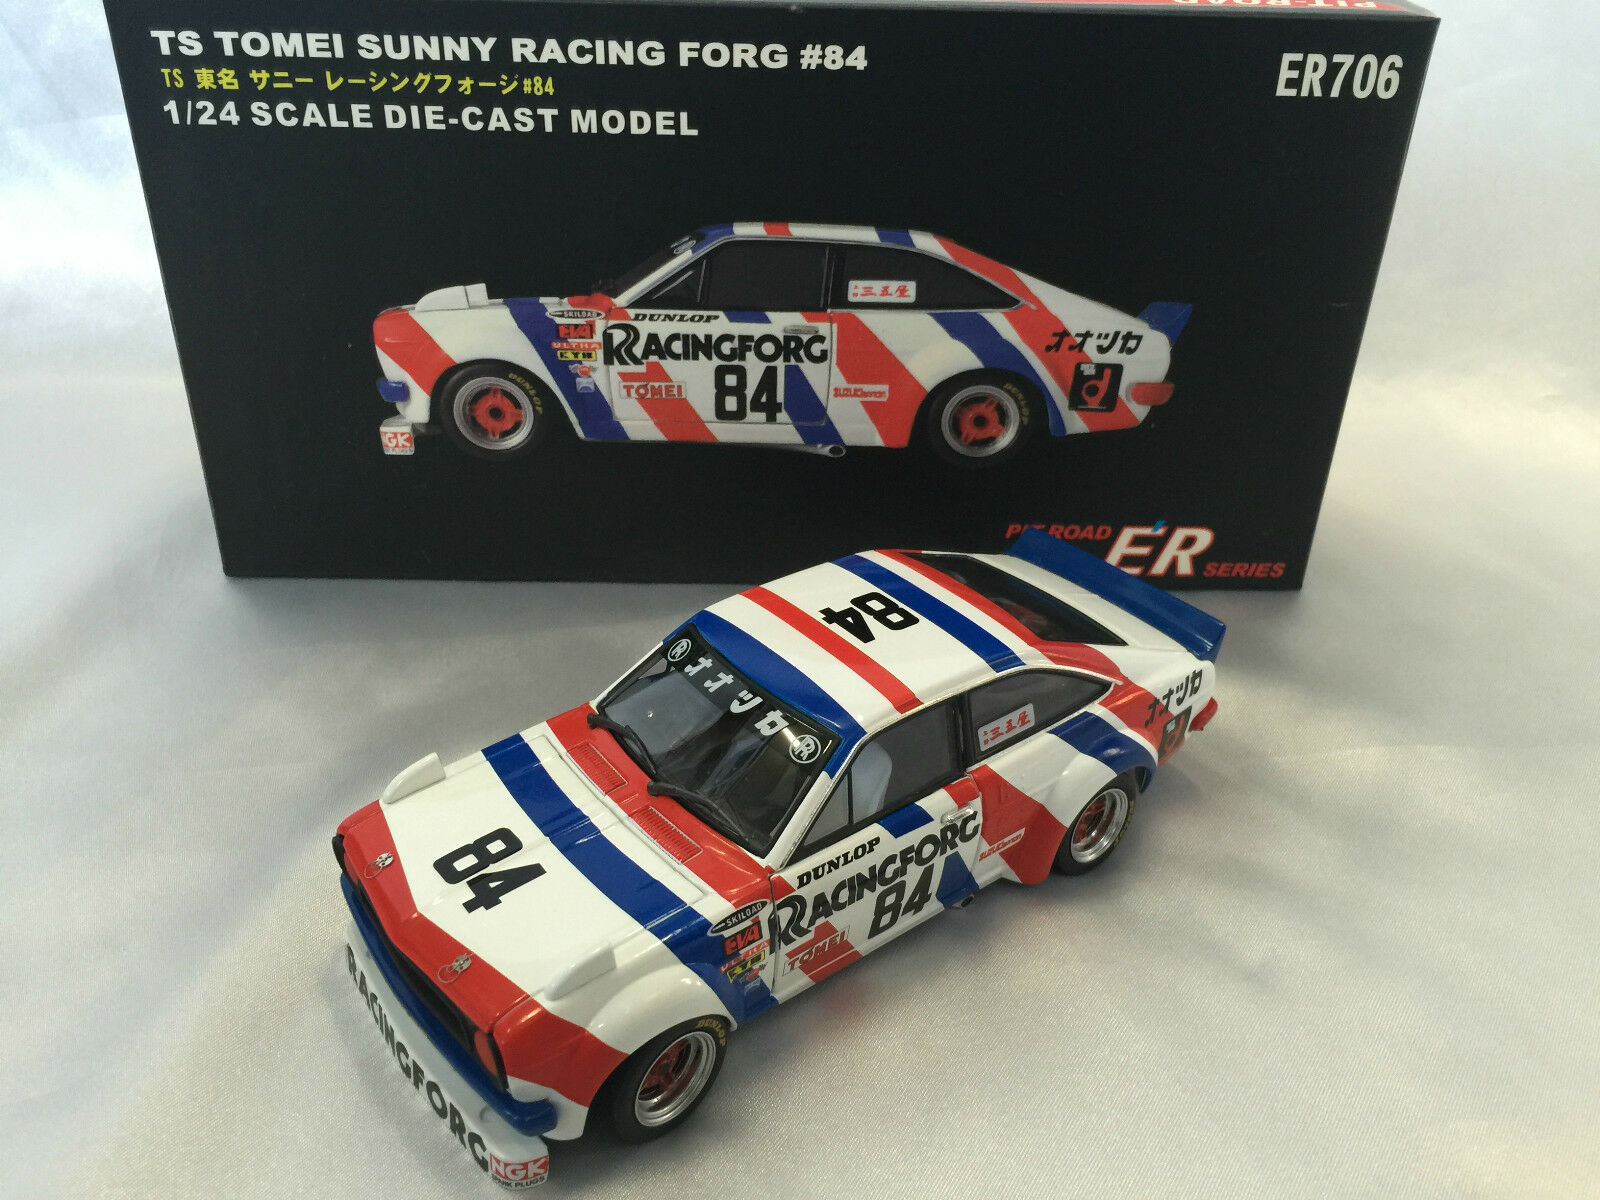 DATSUN Sunny 1200 TS Racing Forg   84 Cars 1 24 Pitroad KB110 A12 Coupe Boys +14